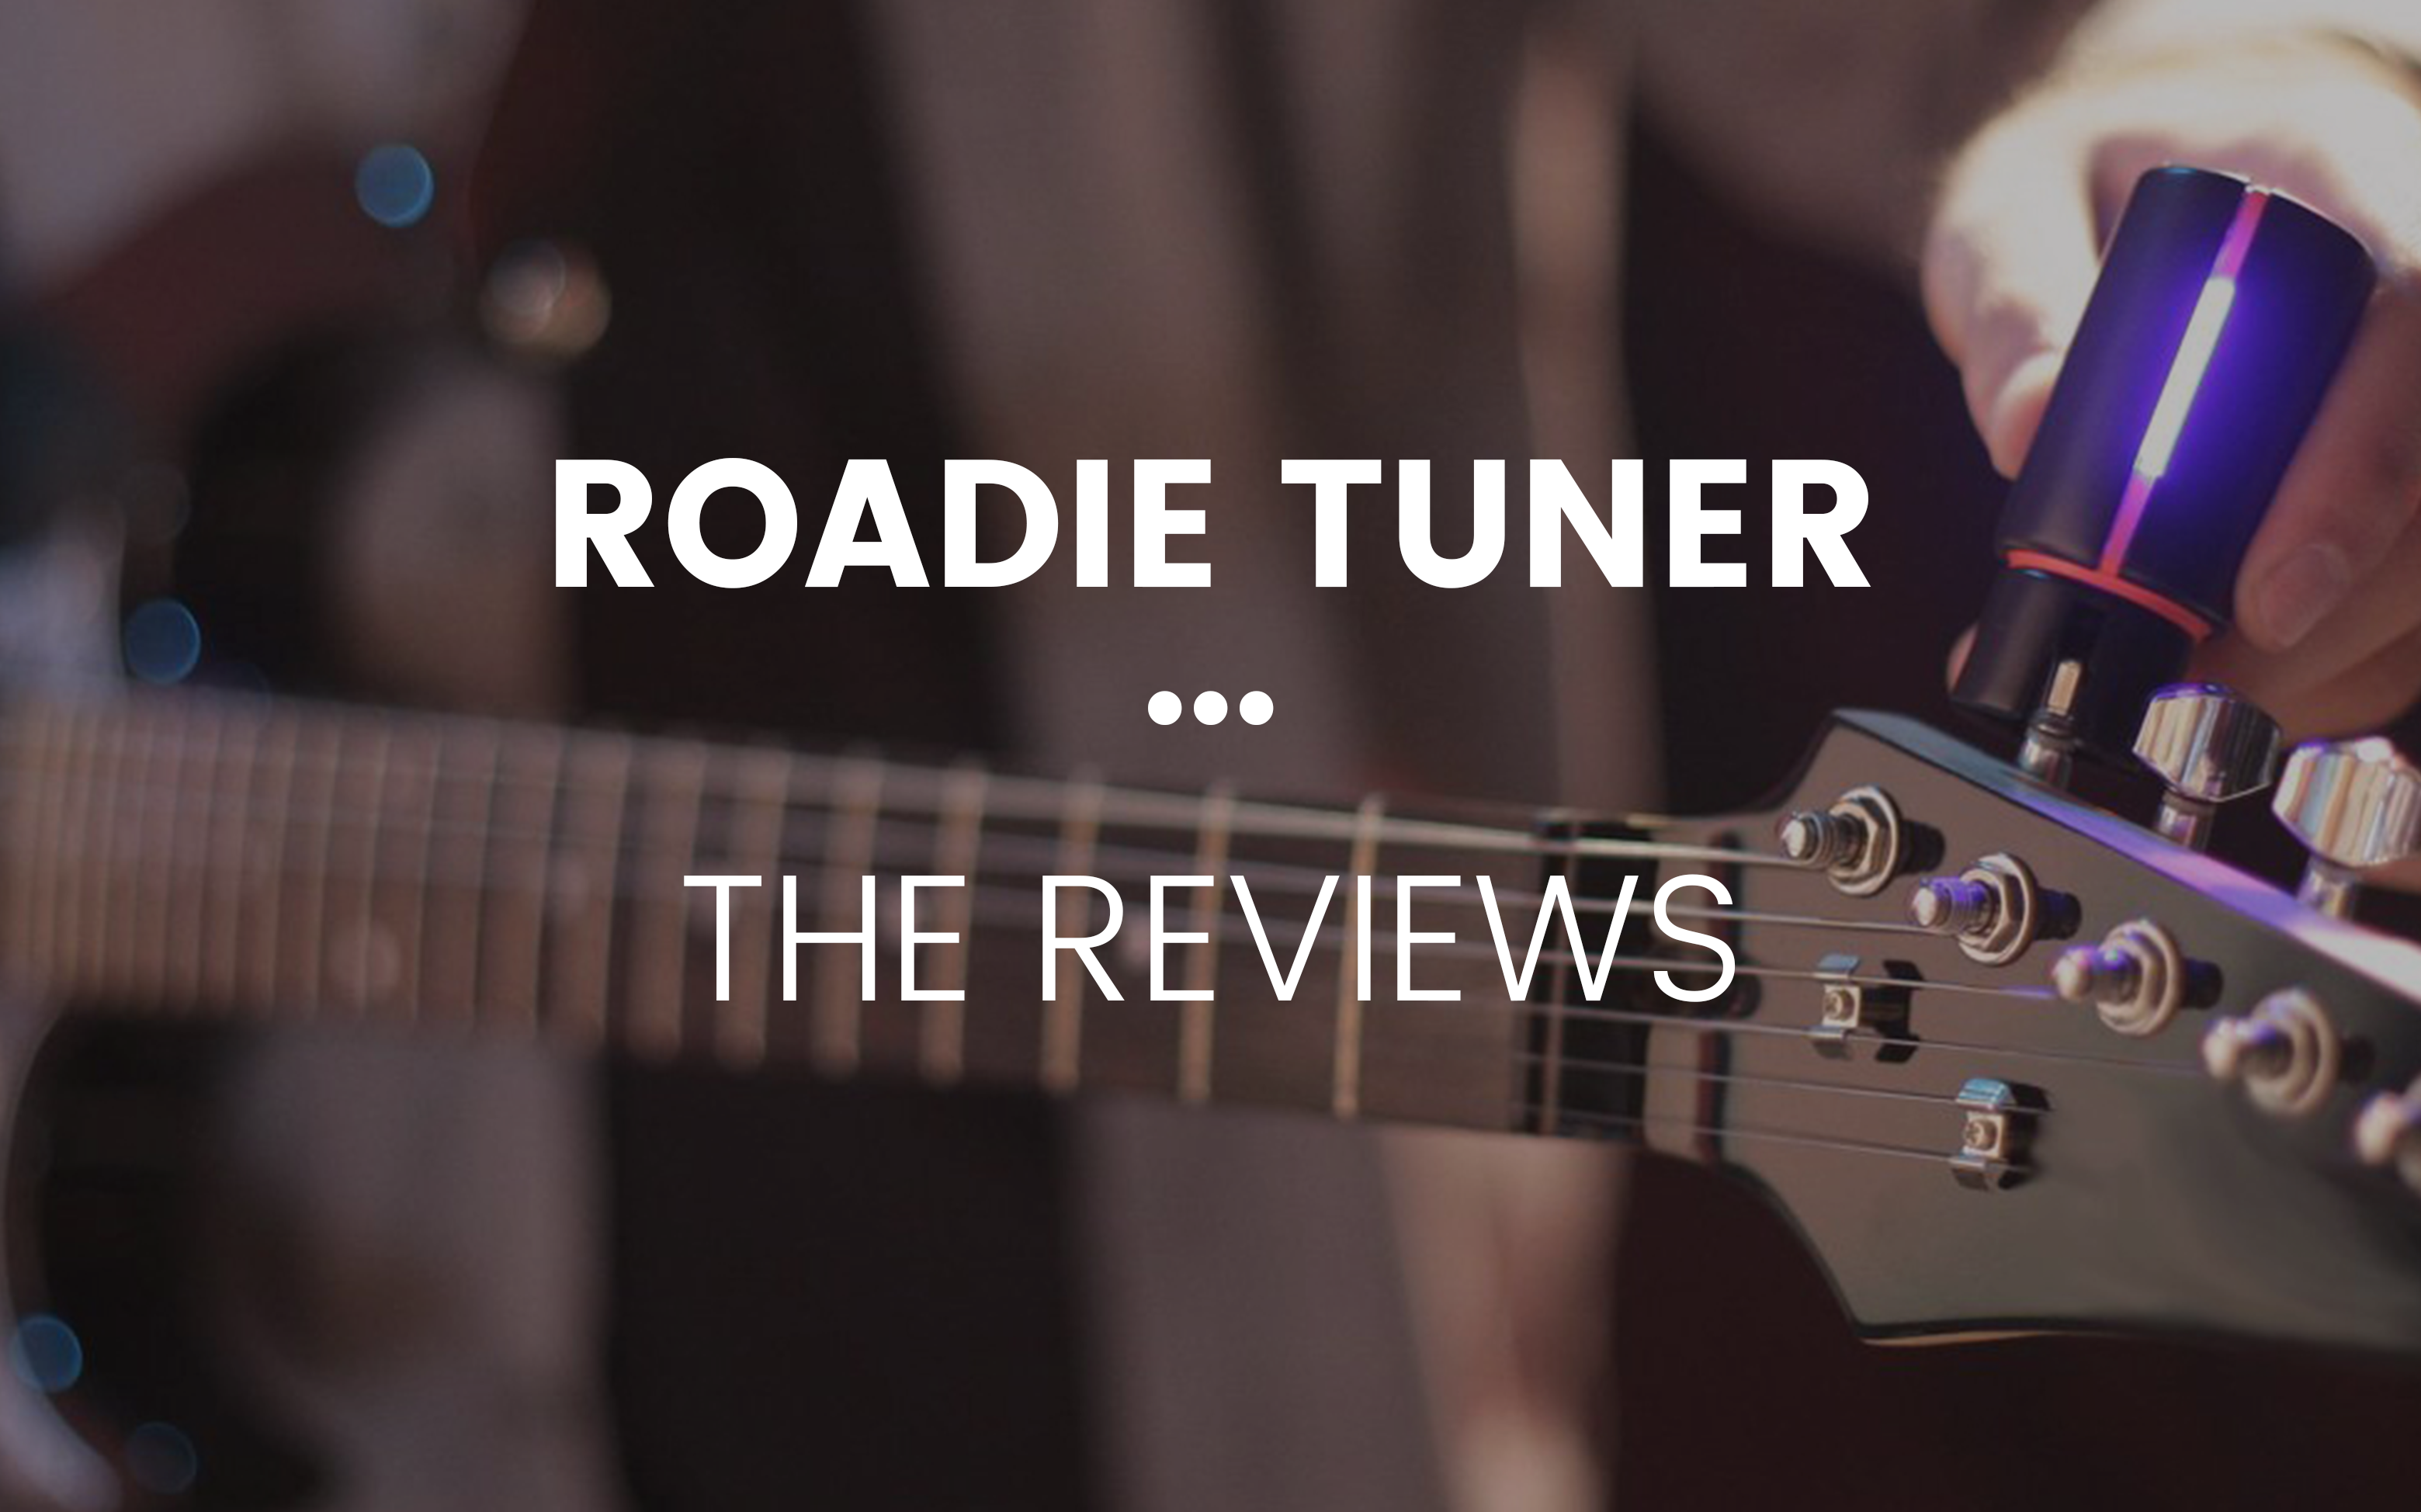 Roadie Tuner – The Reviews